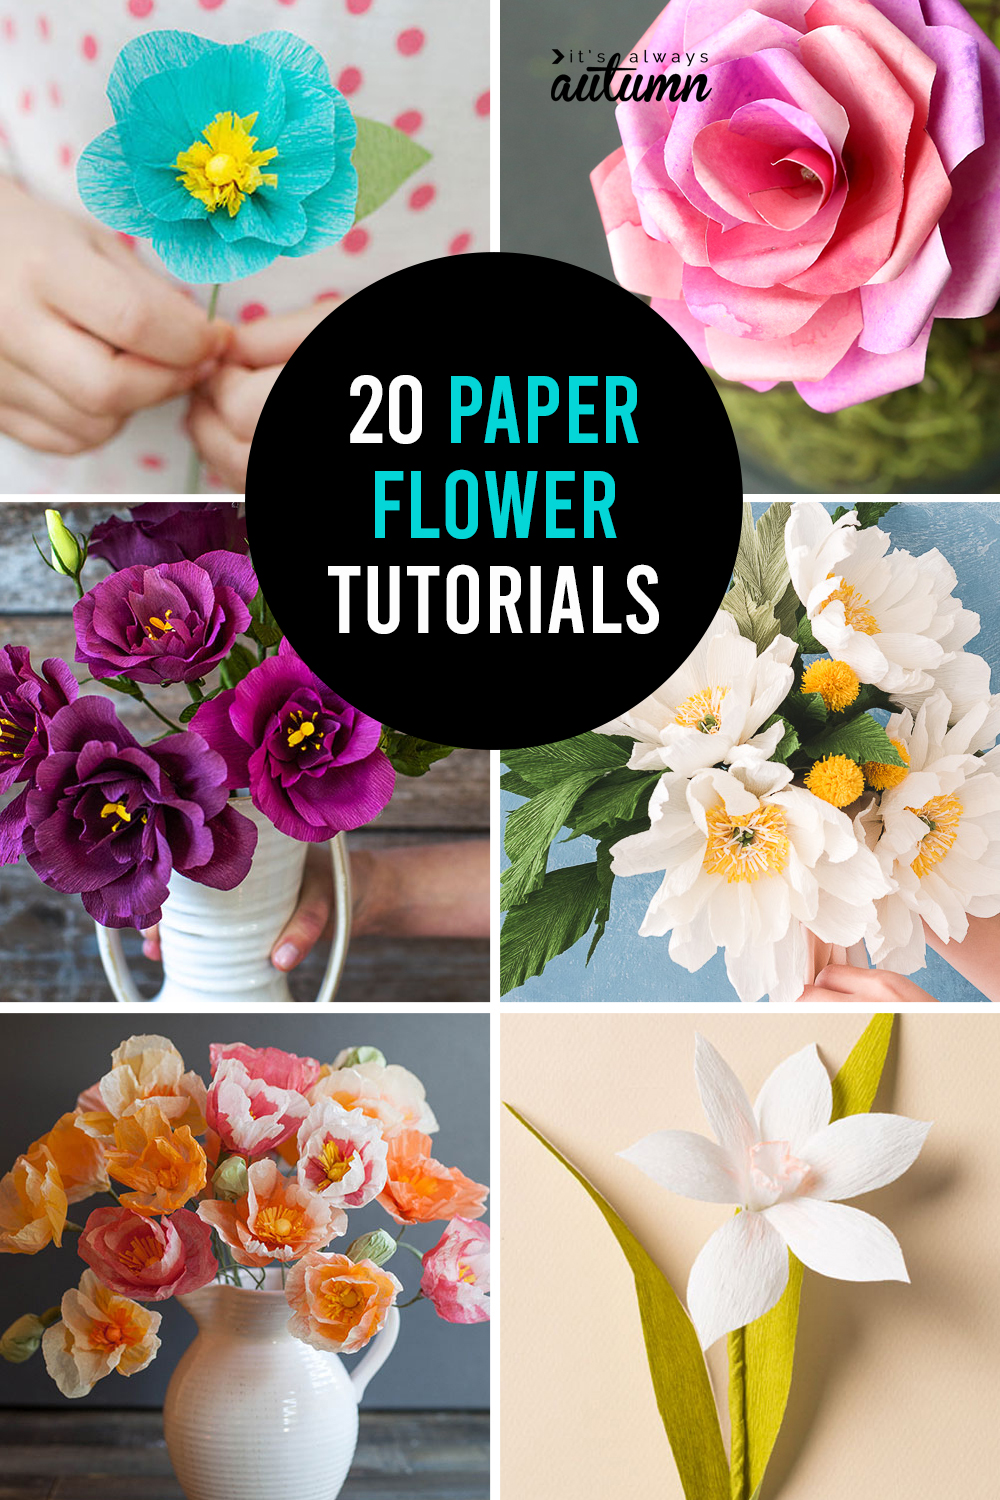 How to make paper flowers - 20 gorgeous DIY paper flower tutorials